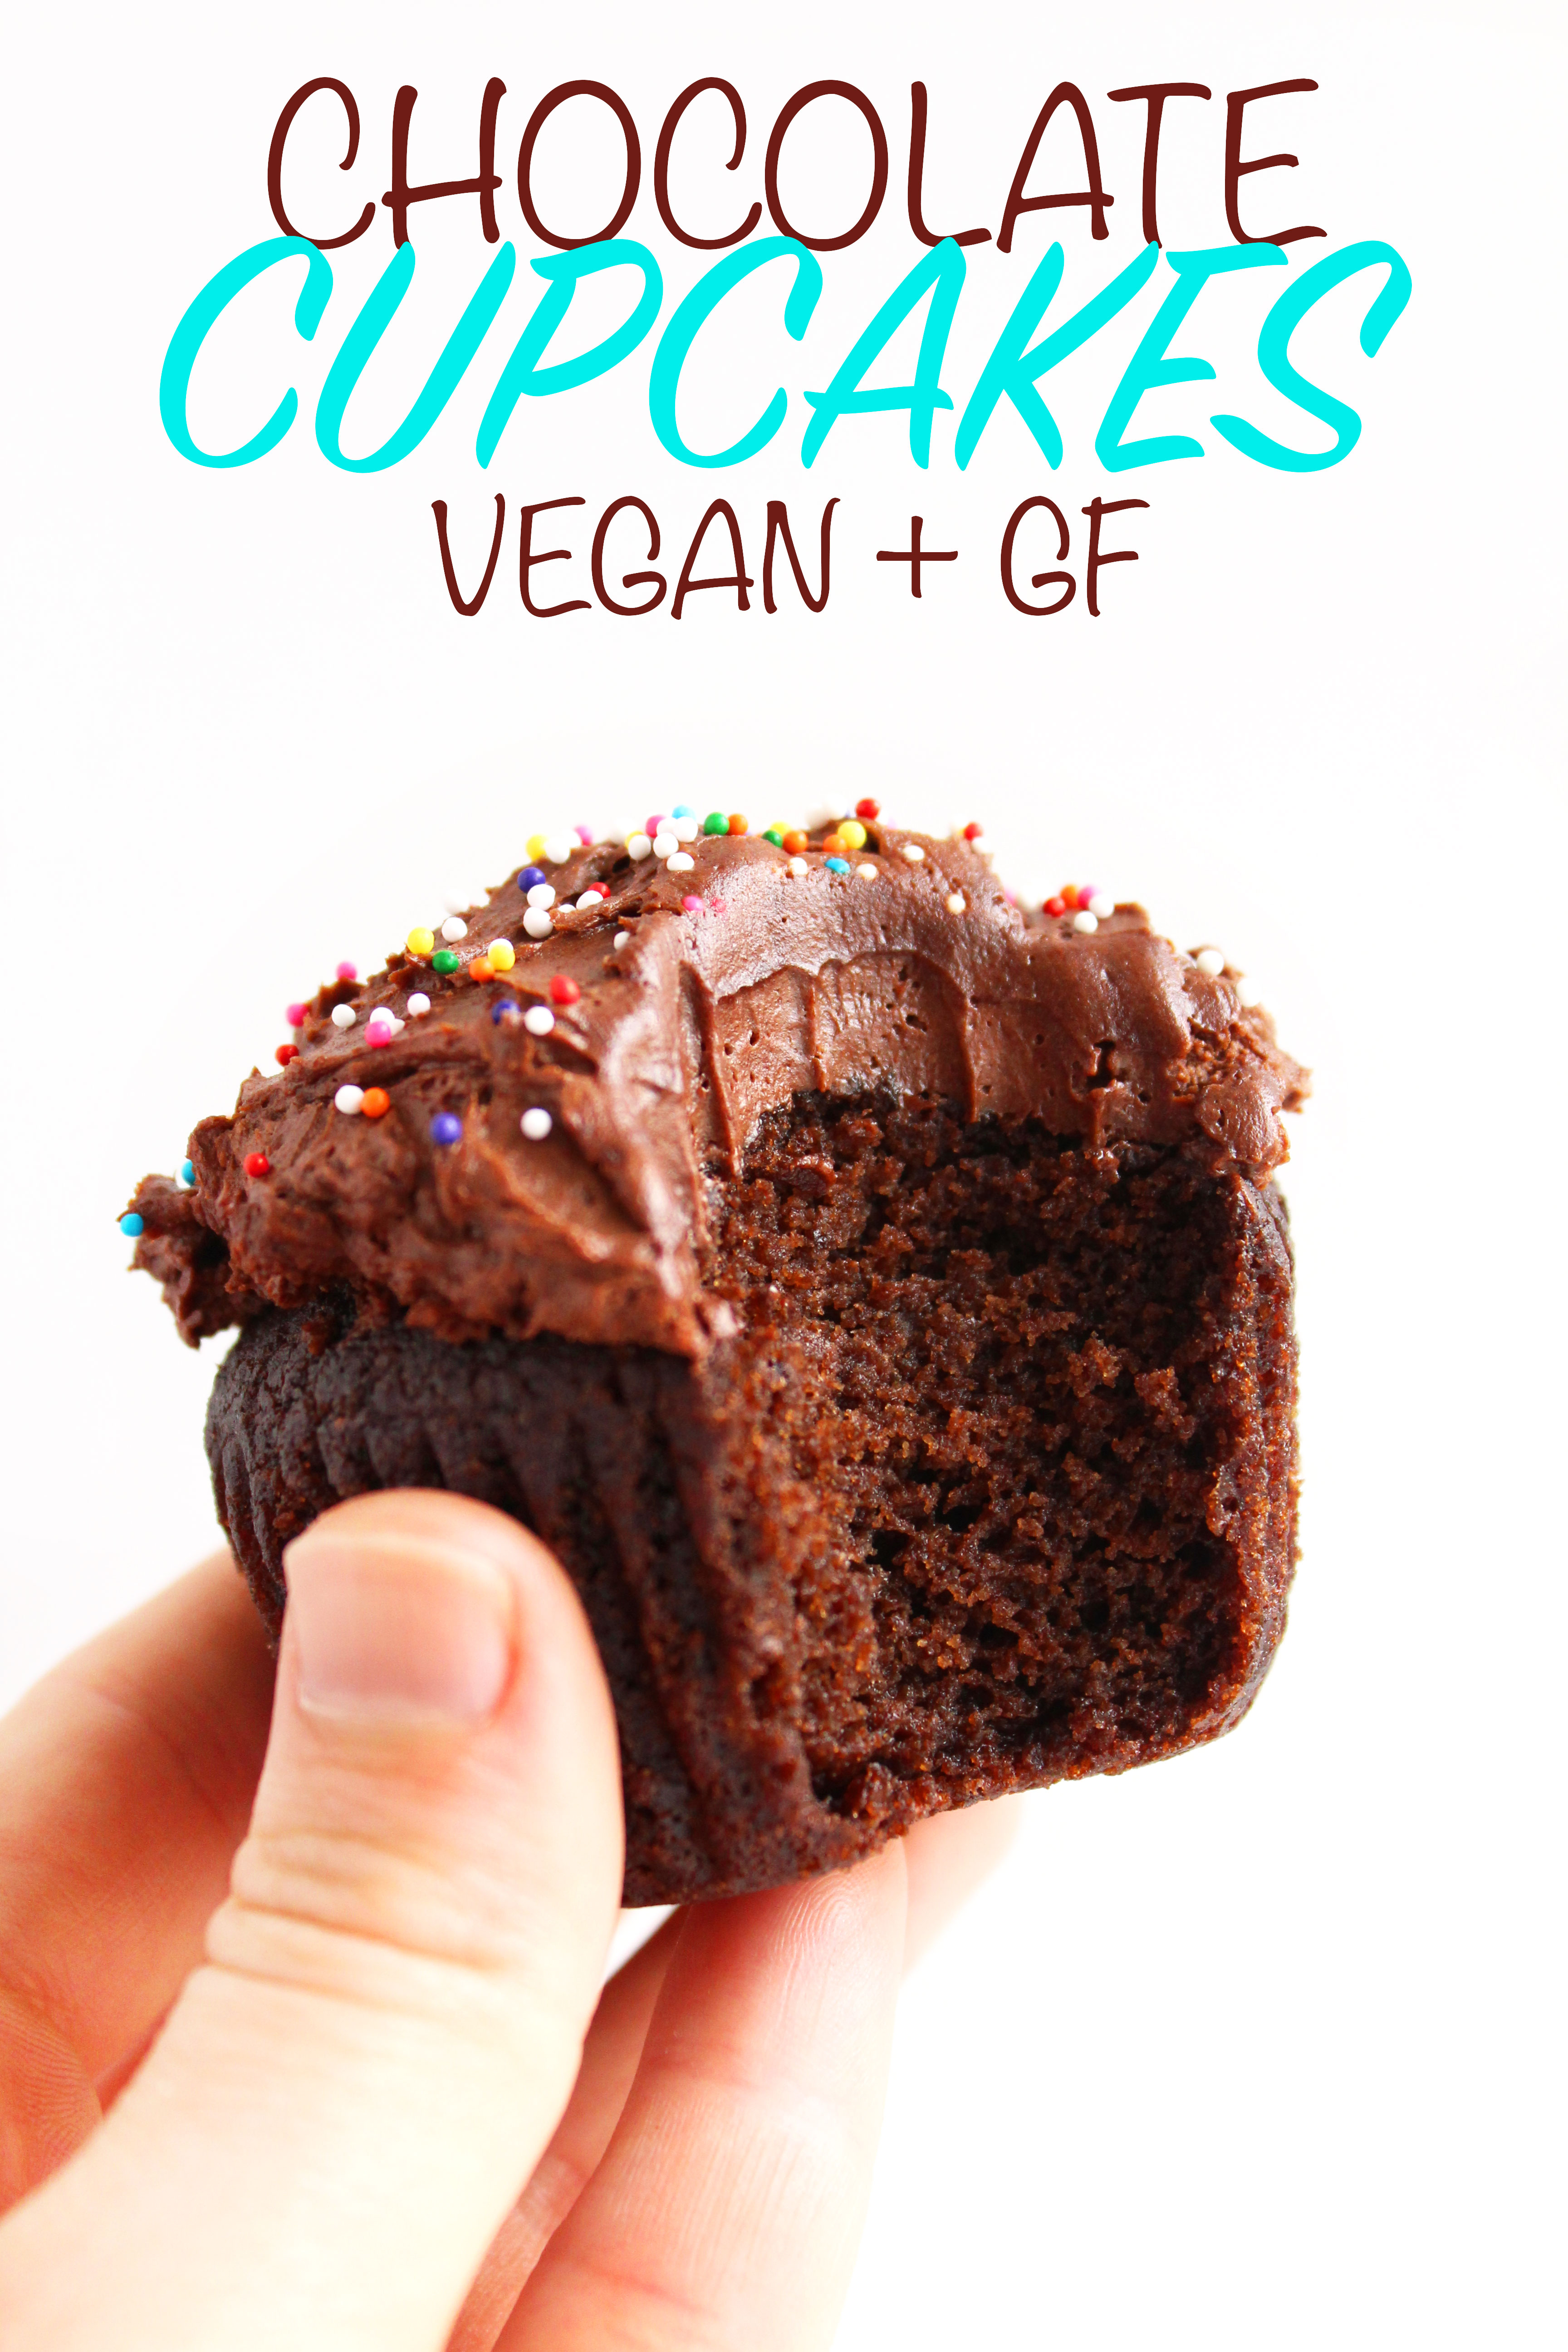 Vegan Chocolate Cupcakes (GF)! A cupcake worthy of a celebration - super chocolatey, moist, & topped with a to-die-for fudge frosting! #vegan #glutenfree #cupcakes | Peachandthecobbler.com